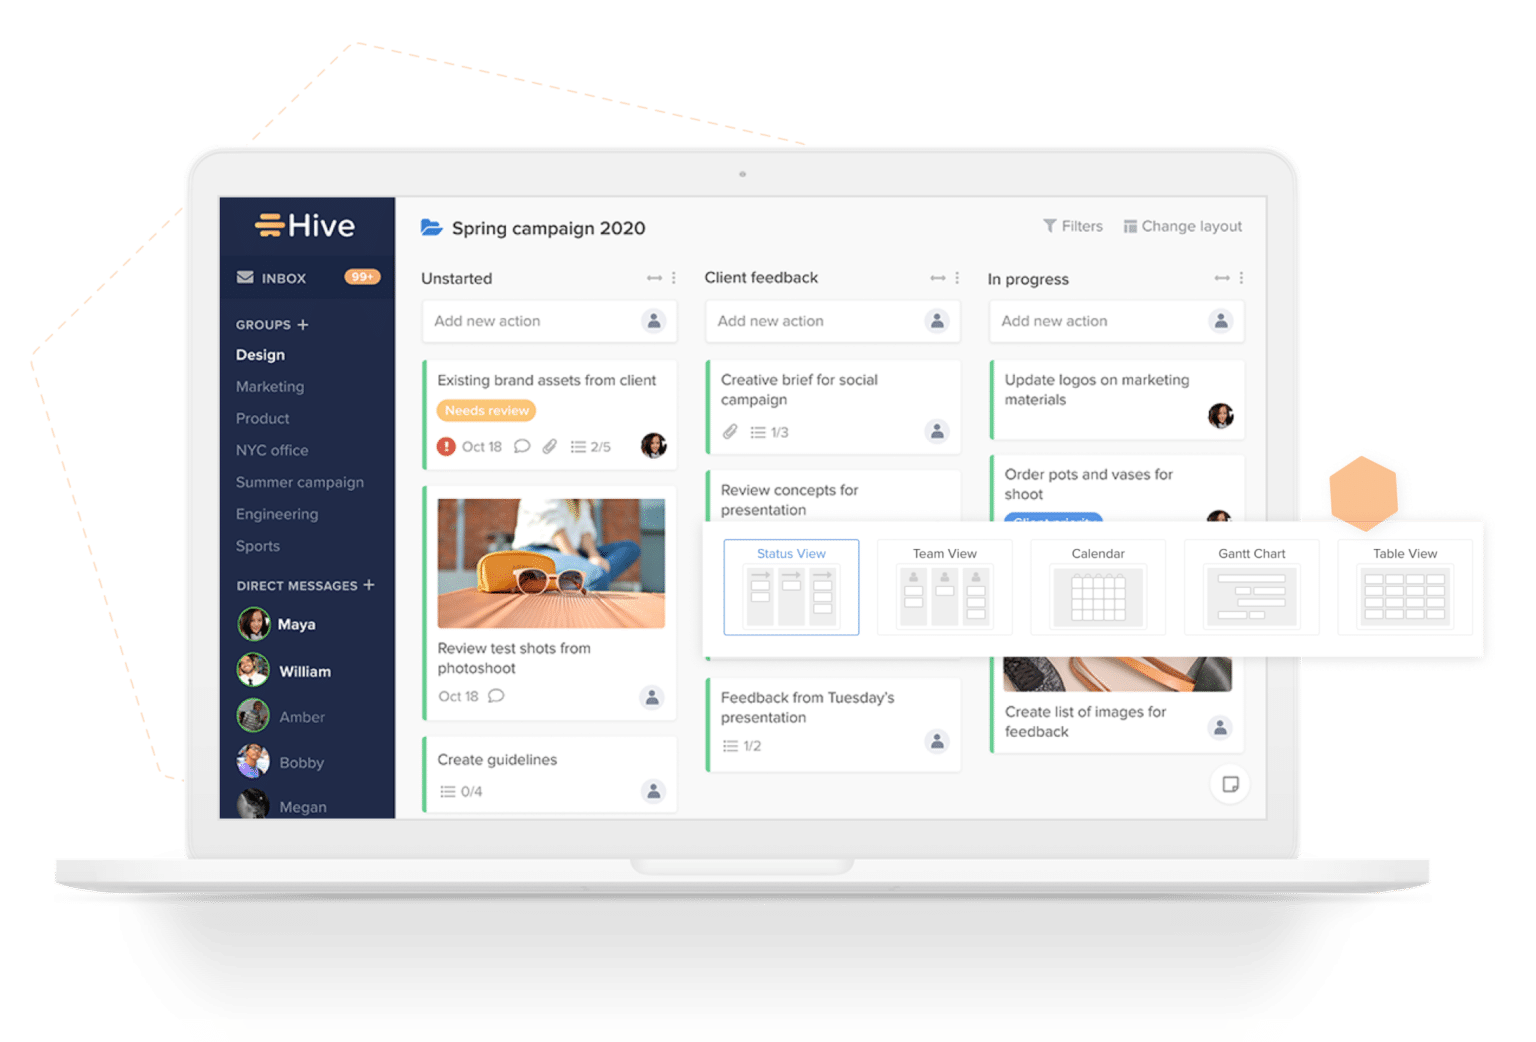 Hive Project management tool